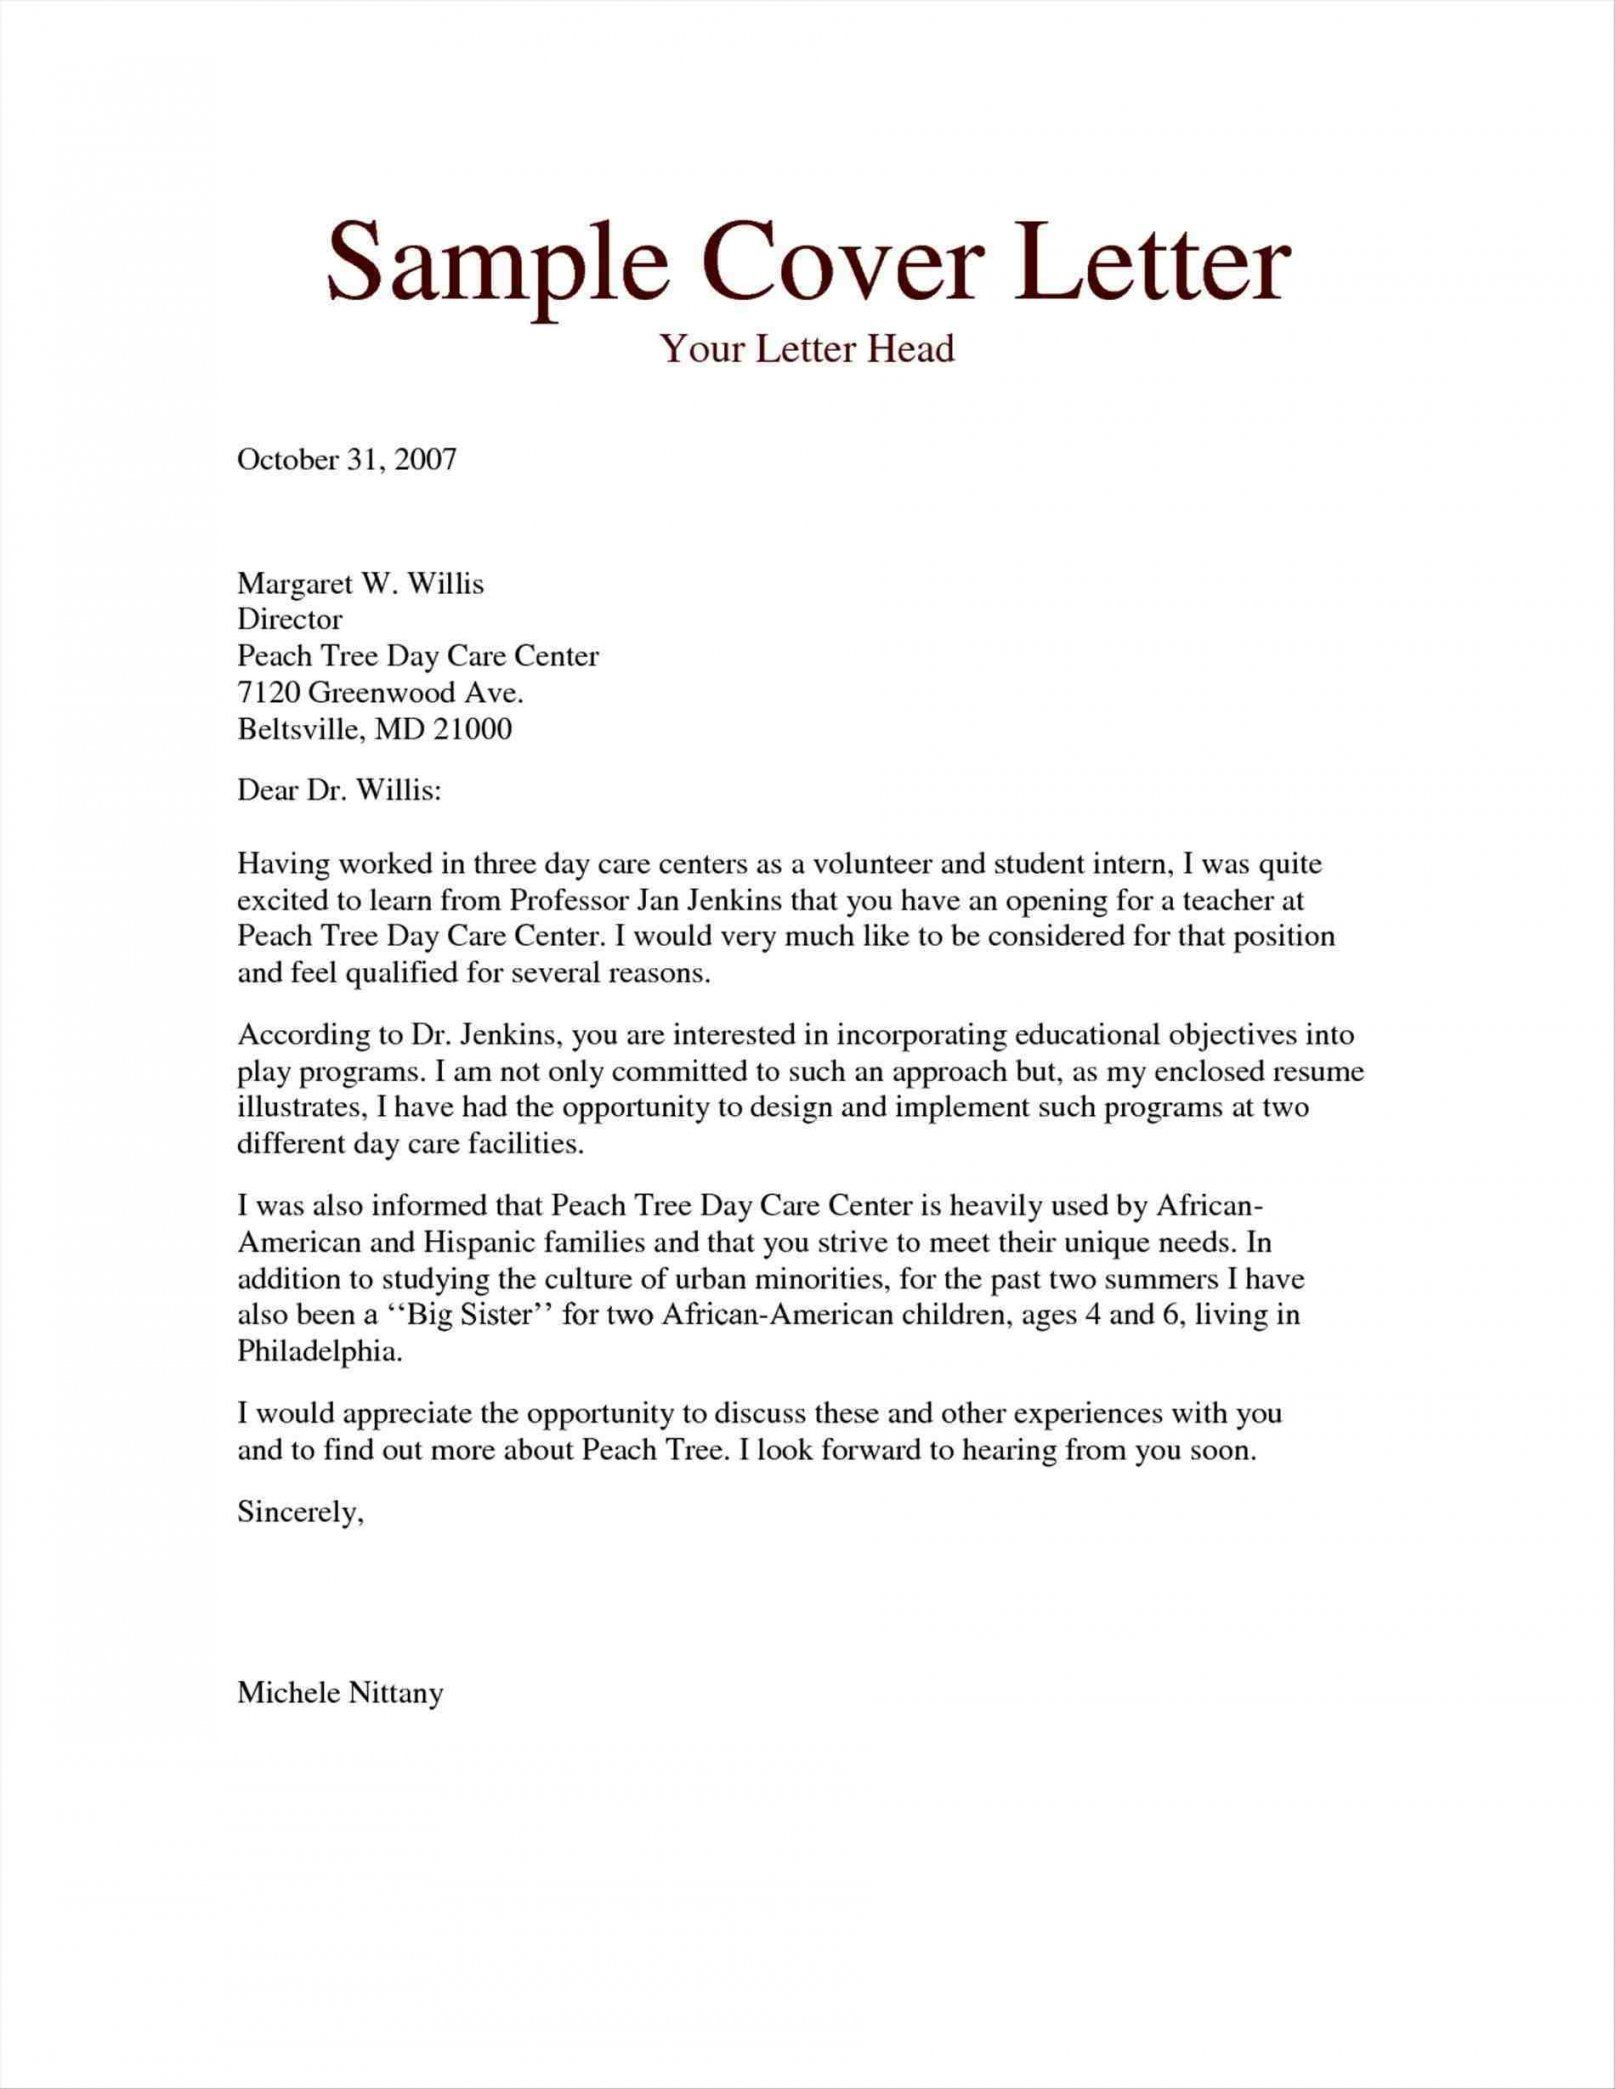 cover letter template tamu resume format for example templates job sheet cisco ise Resume Resume Cover Sheet Template